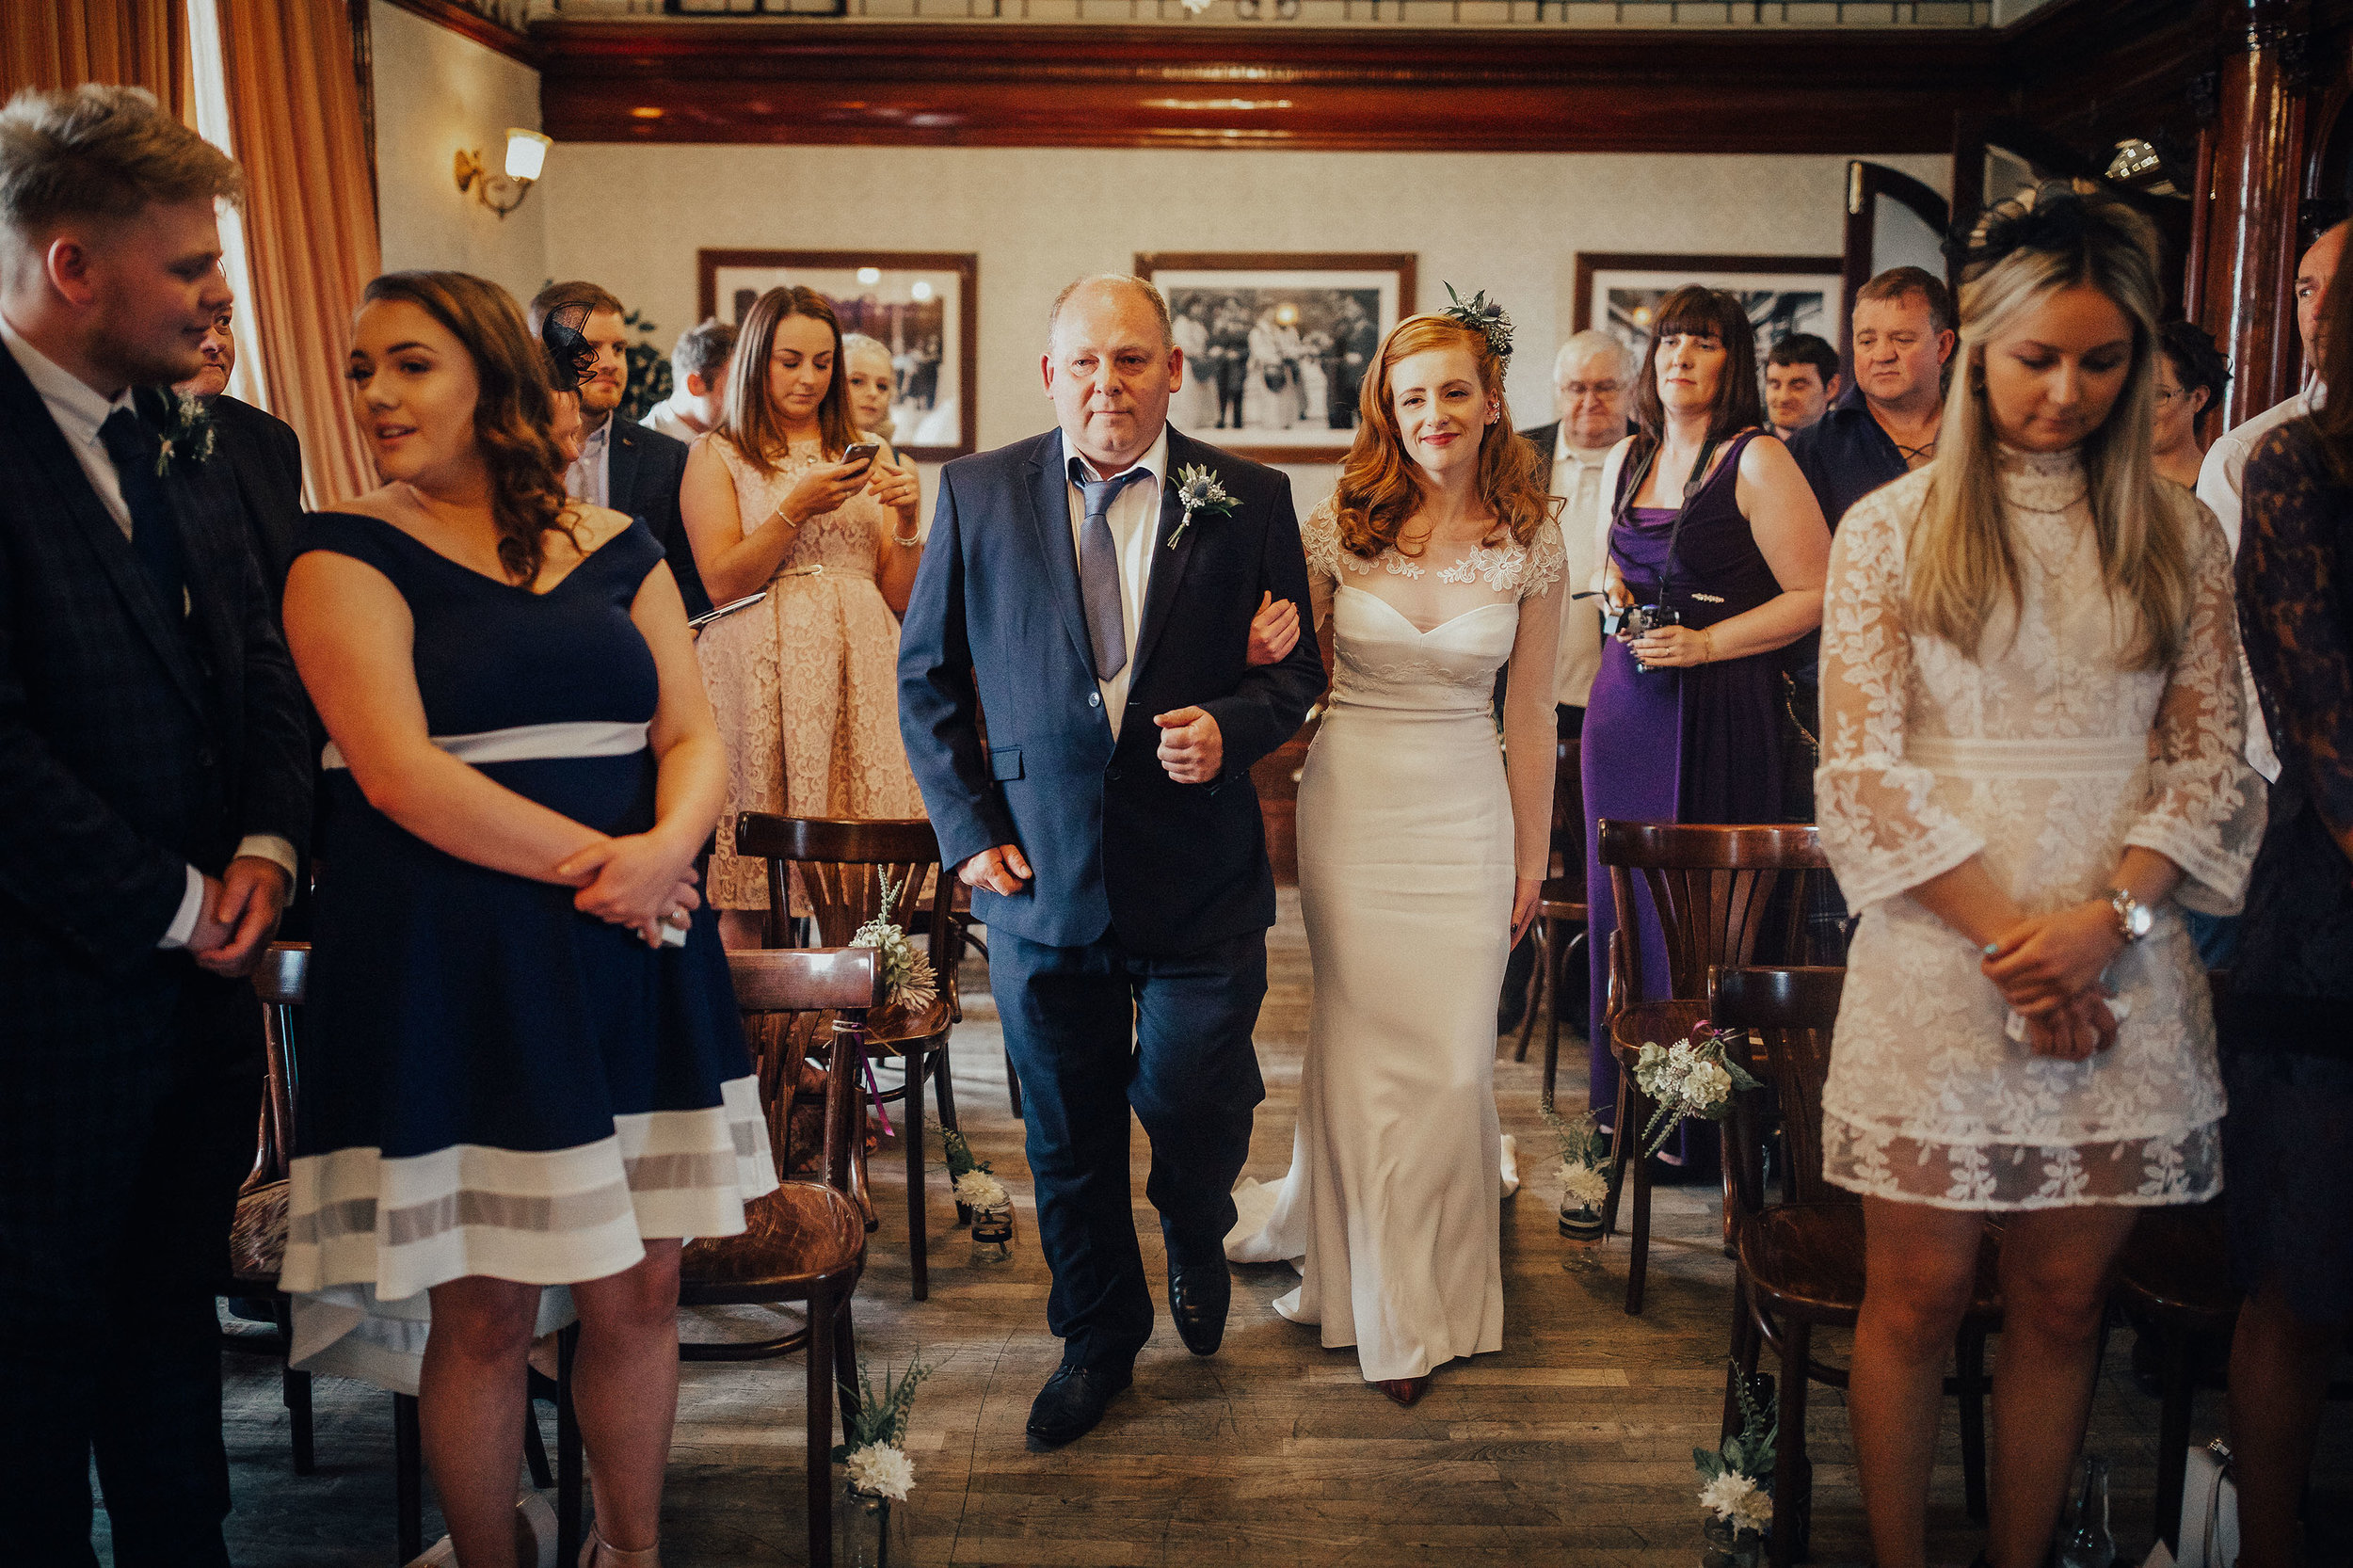 SAME_SEX_WEDDING_PHOTOGRAPHER_SLOANS_GLASGOW_PJ_PHILLIPS_PHOTOGRAPHY_31.jpg